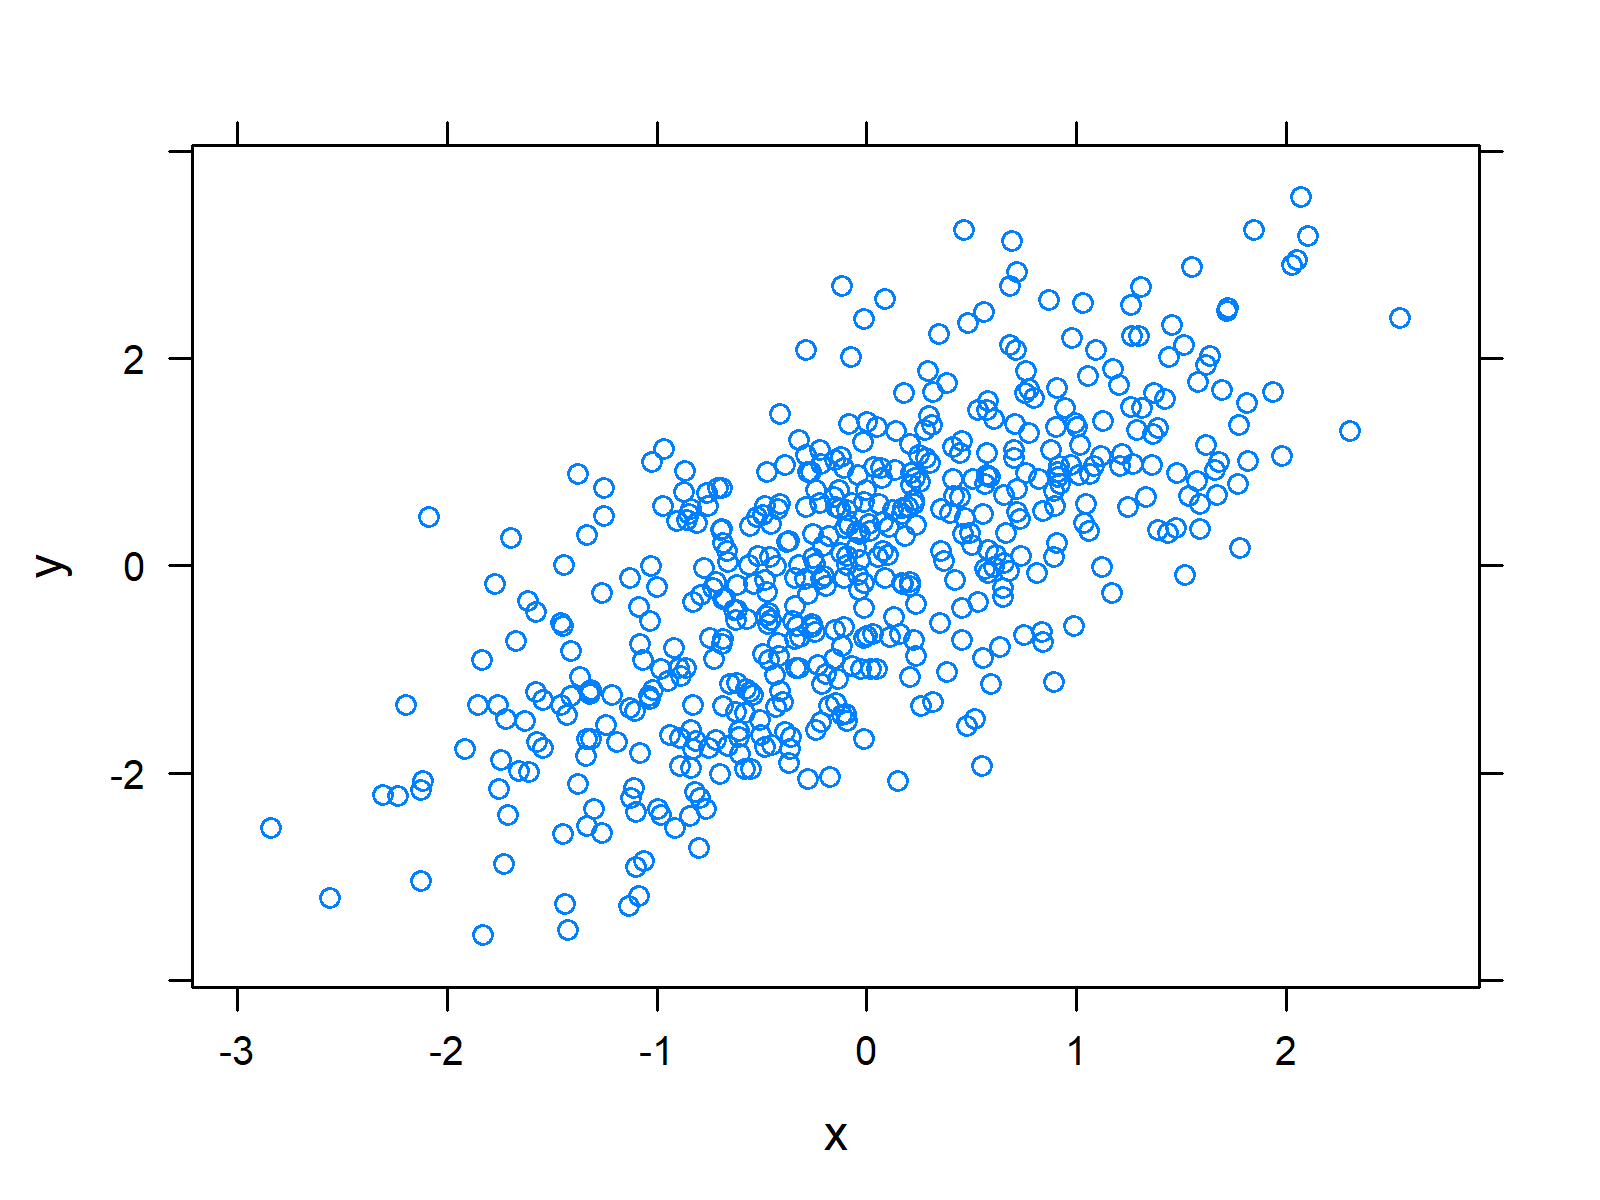 Scatterplot in lattice